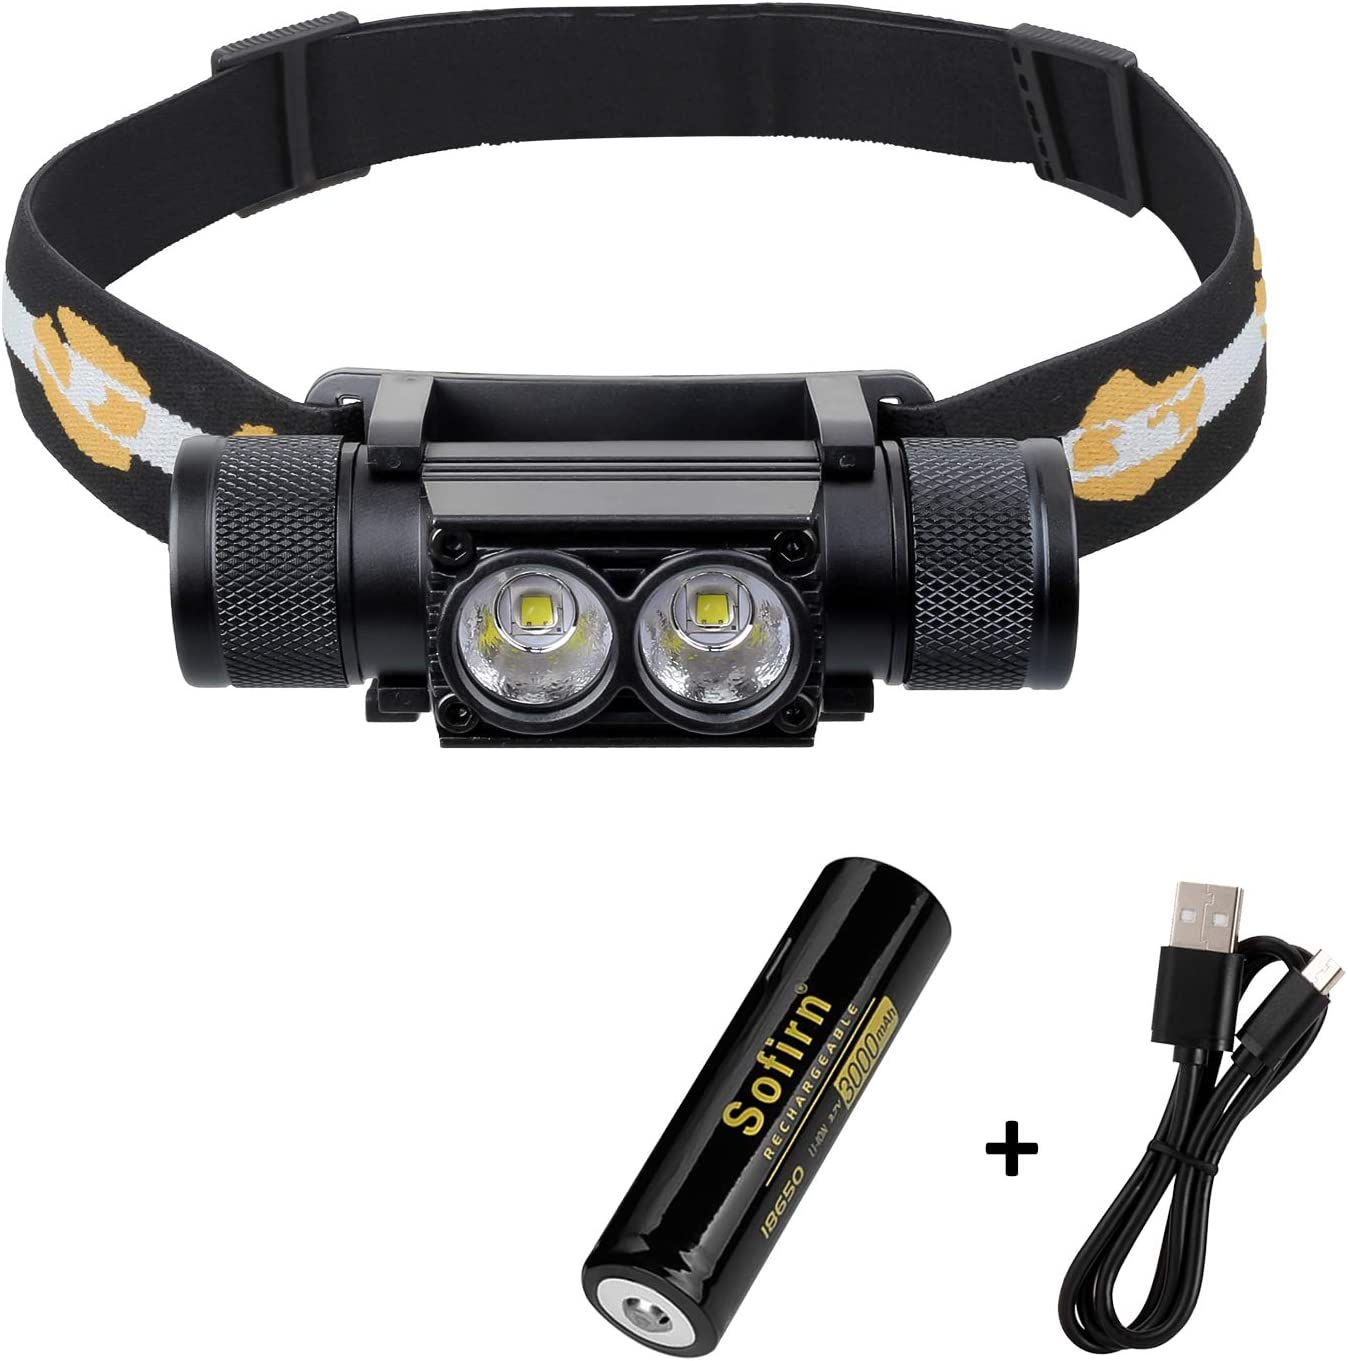 Sofirn SP40 Headlamp LED Cree XPL 18650 USB Rechargeable Head lamp 1200lm Bright